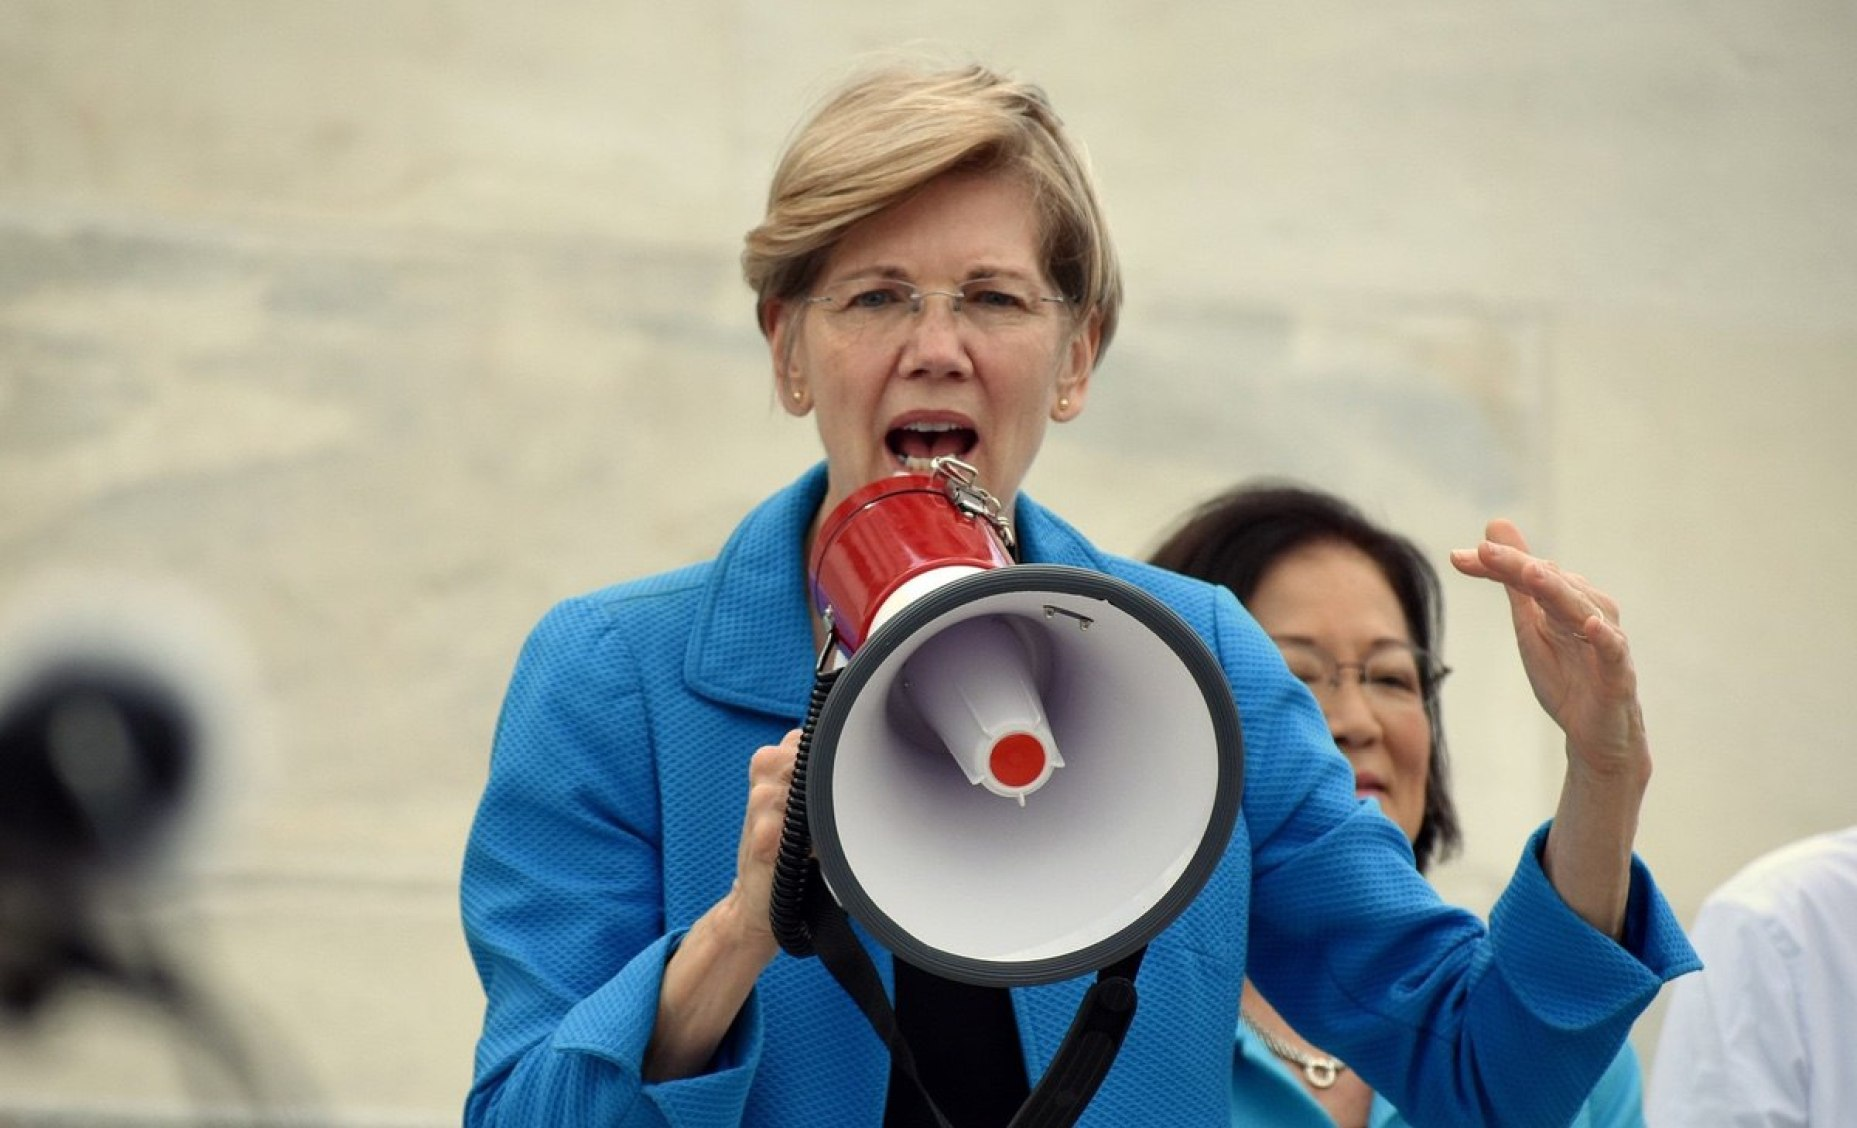 Senator Elizabeth Warren addresses crowds outside the Capitol protesting the GOP health bill - July 25, 2016 (Kelly Bell photography/Creative Commons)